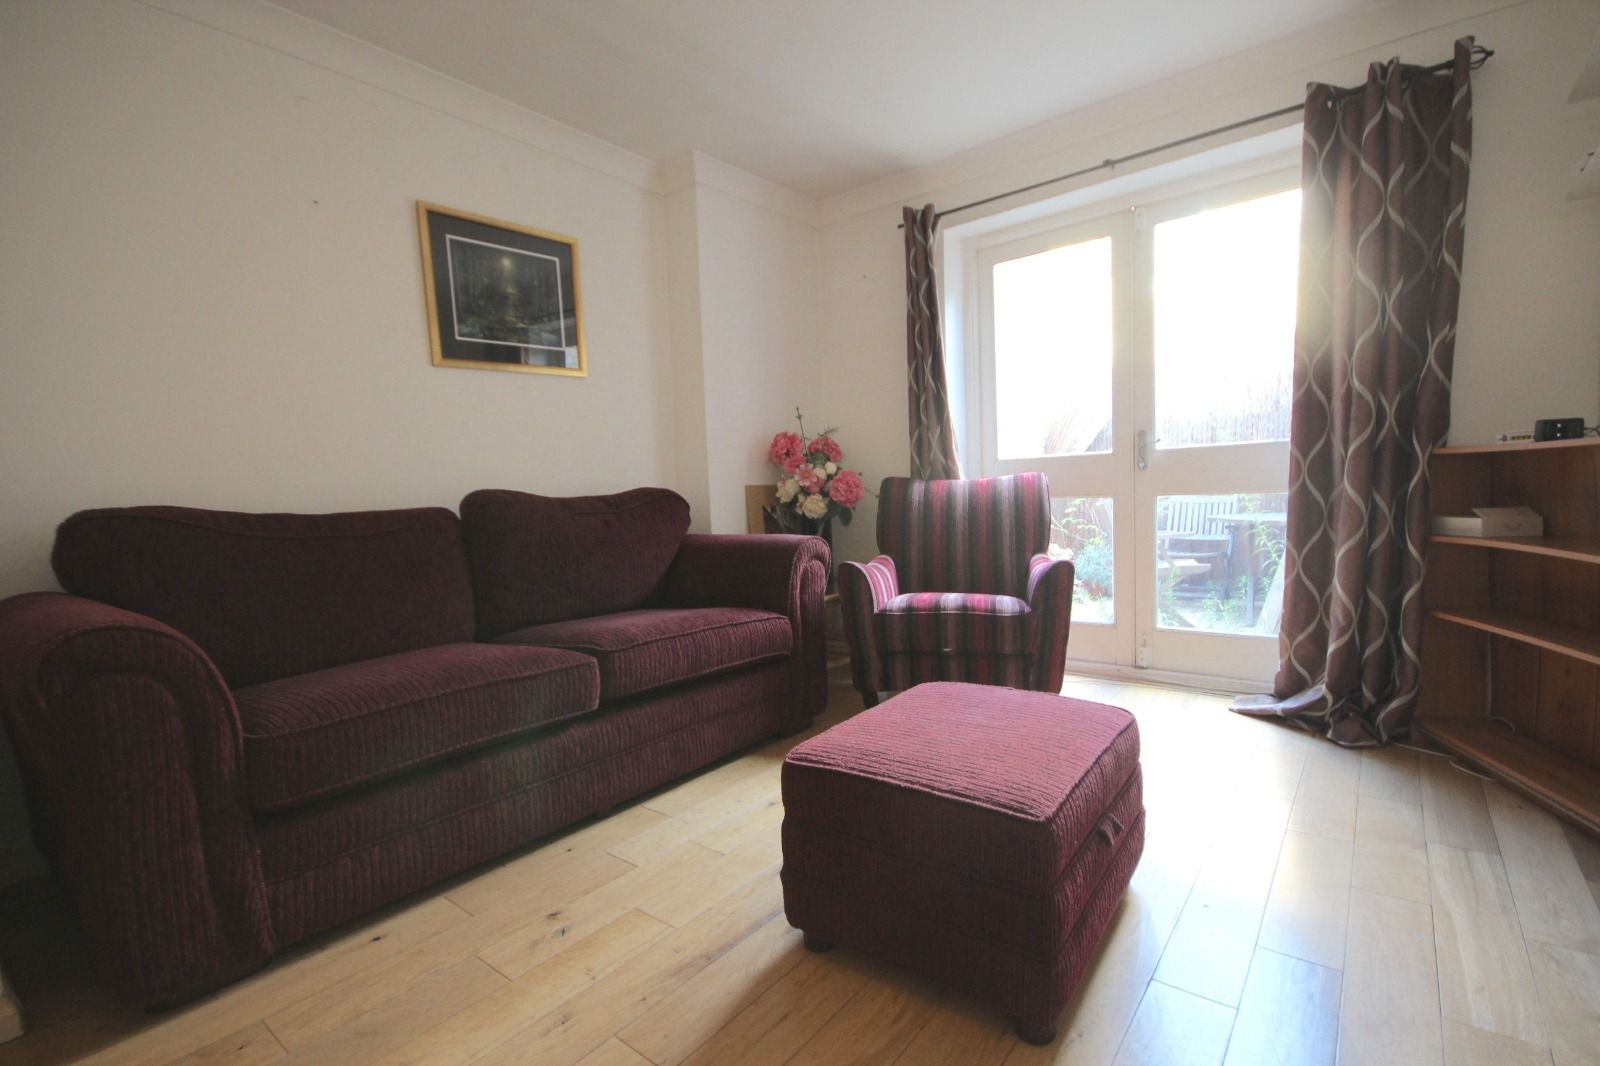 2 bed flat to rent in Southgate Road - Property Image 1